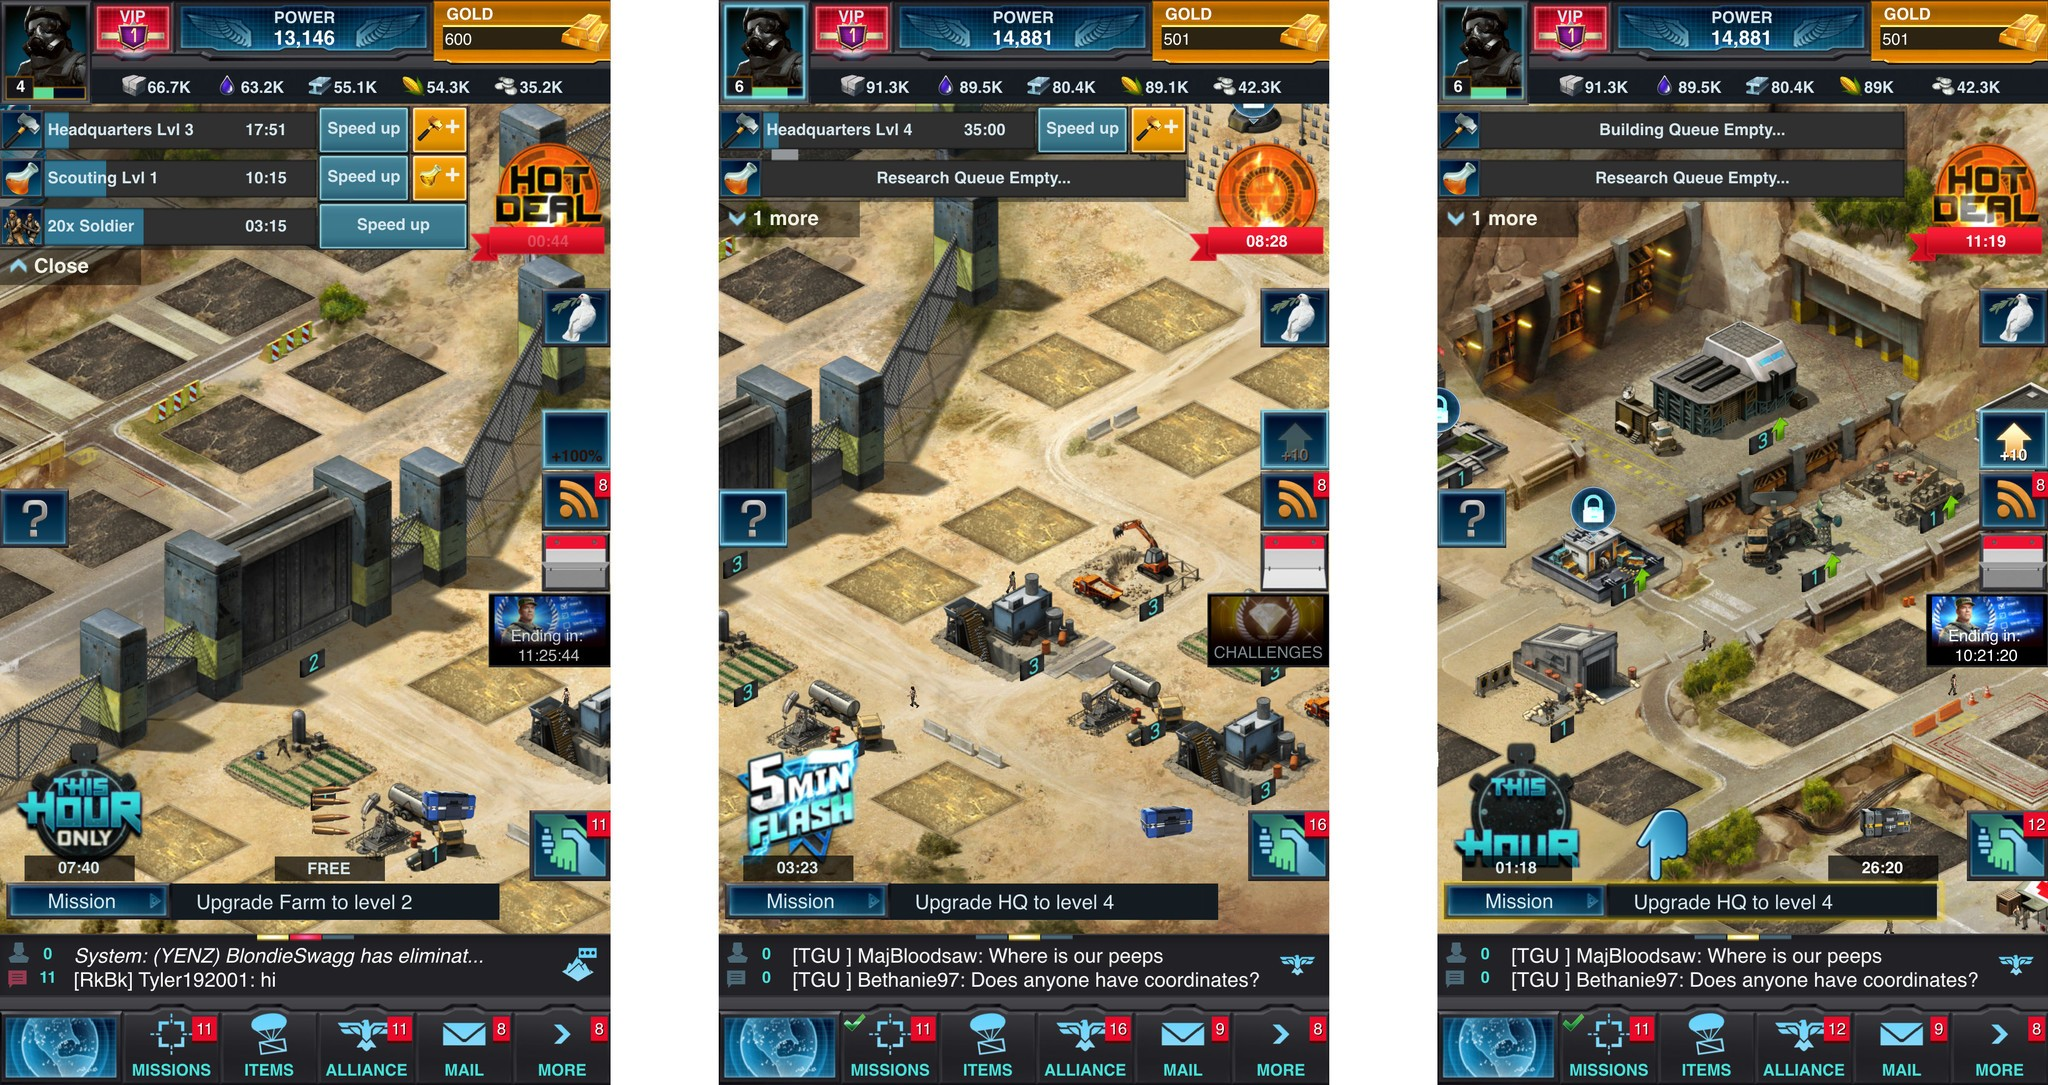 Mobile Strike Main Objective Is To Build The Biggest Richest And Most Powerful Army Command Center Youll Start The Game With Only A Few Buildings